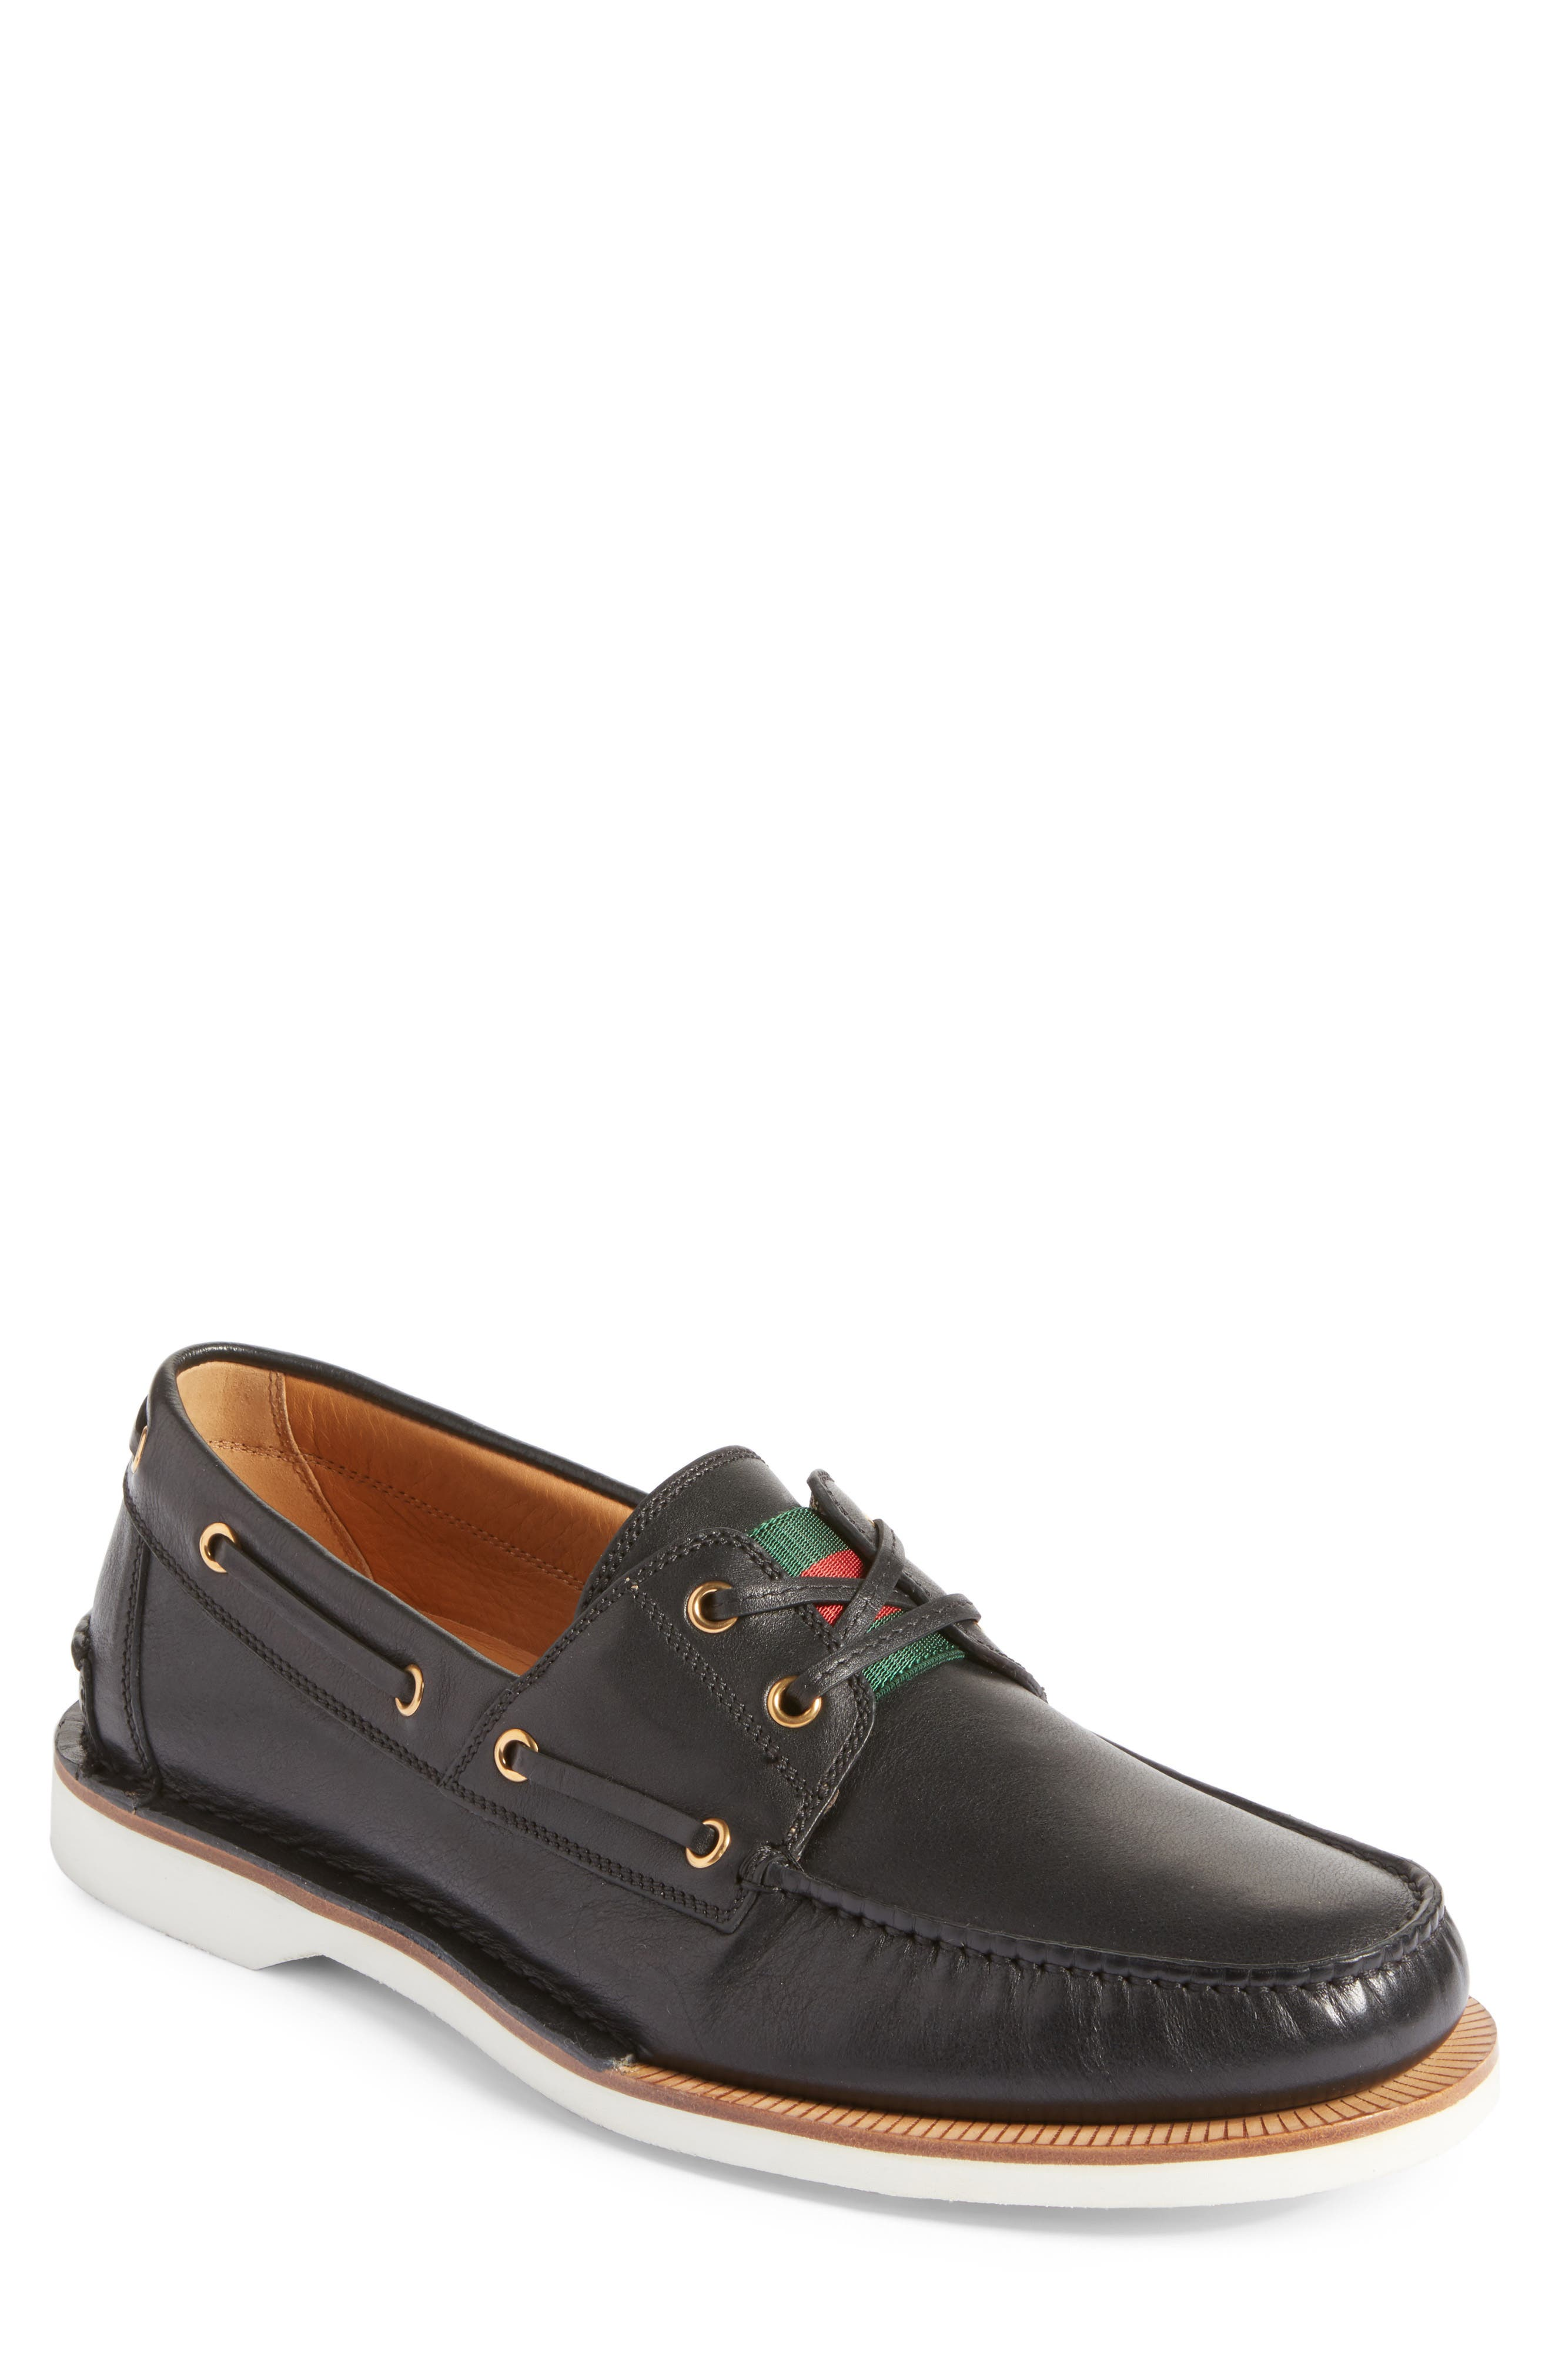 Delta Boat Loafer,                             Main thumbnail 1, color,                             Nero